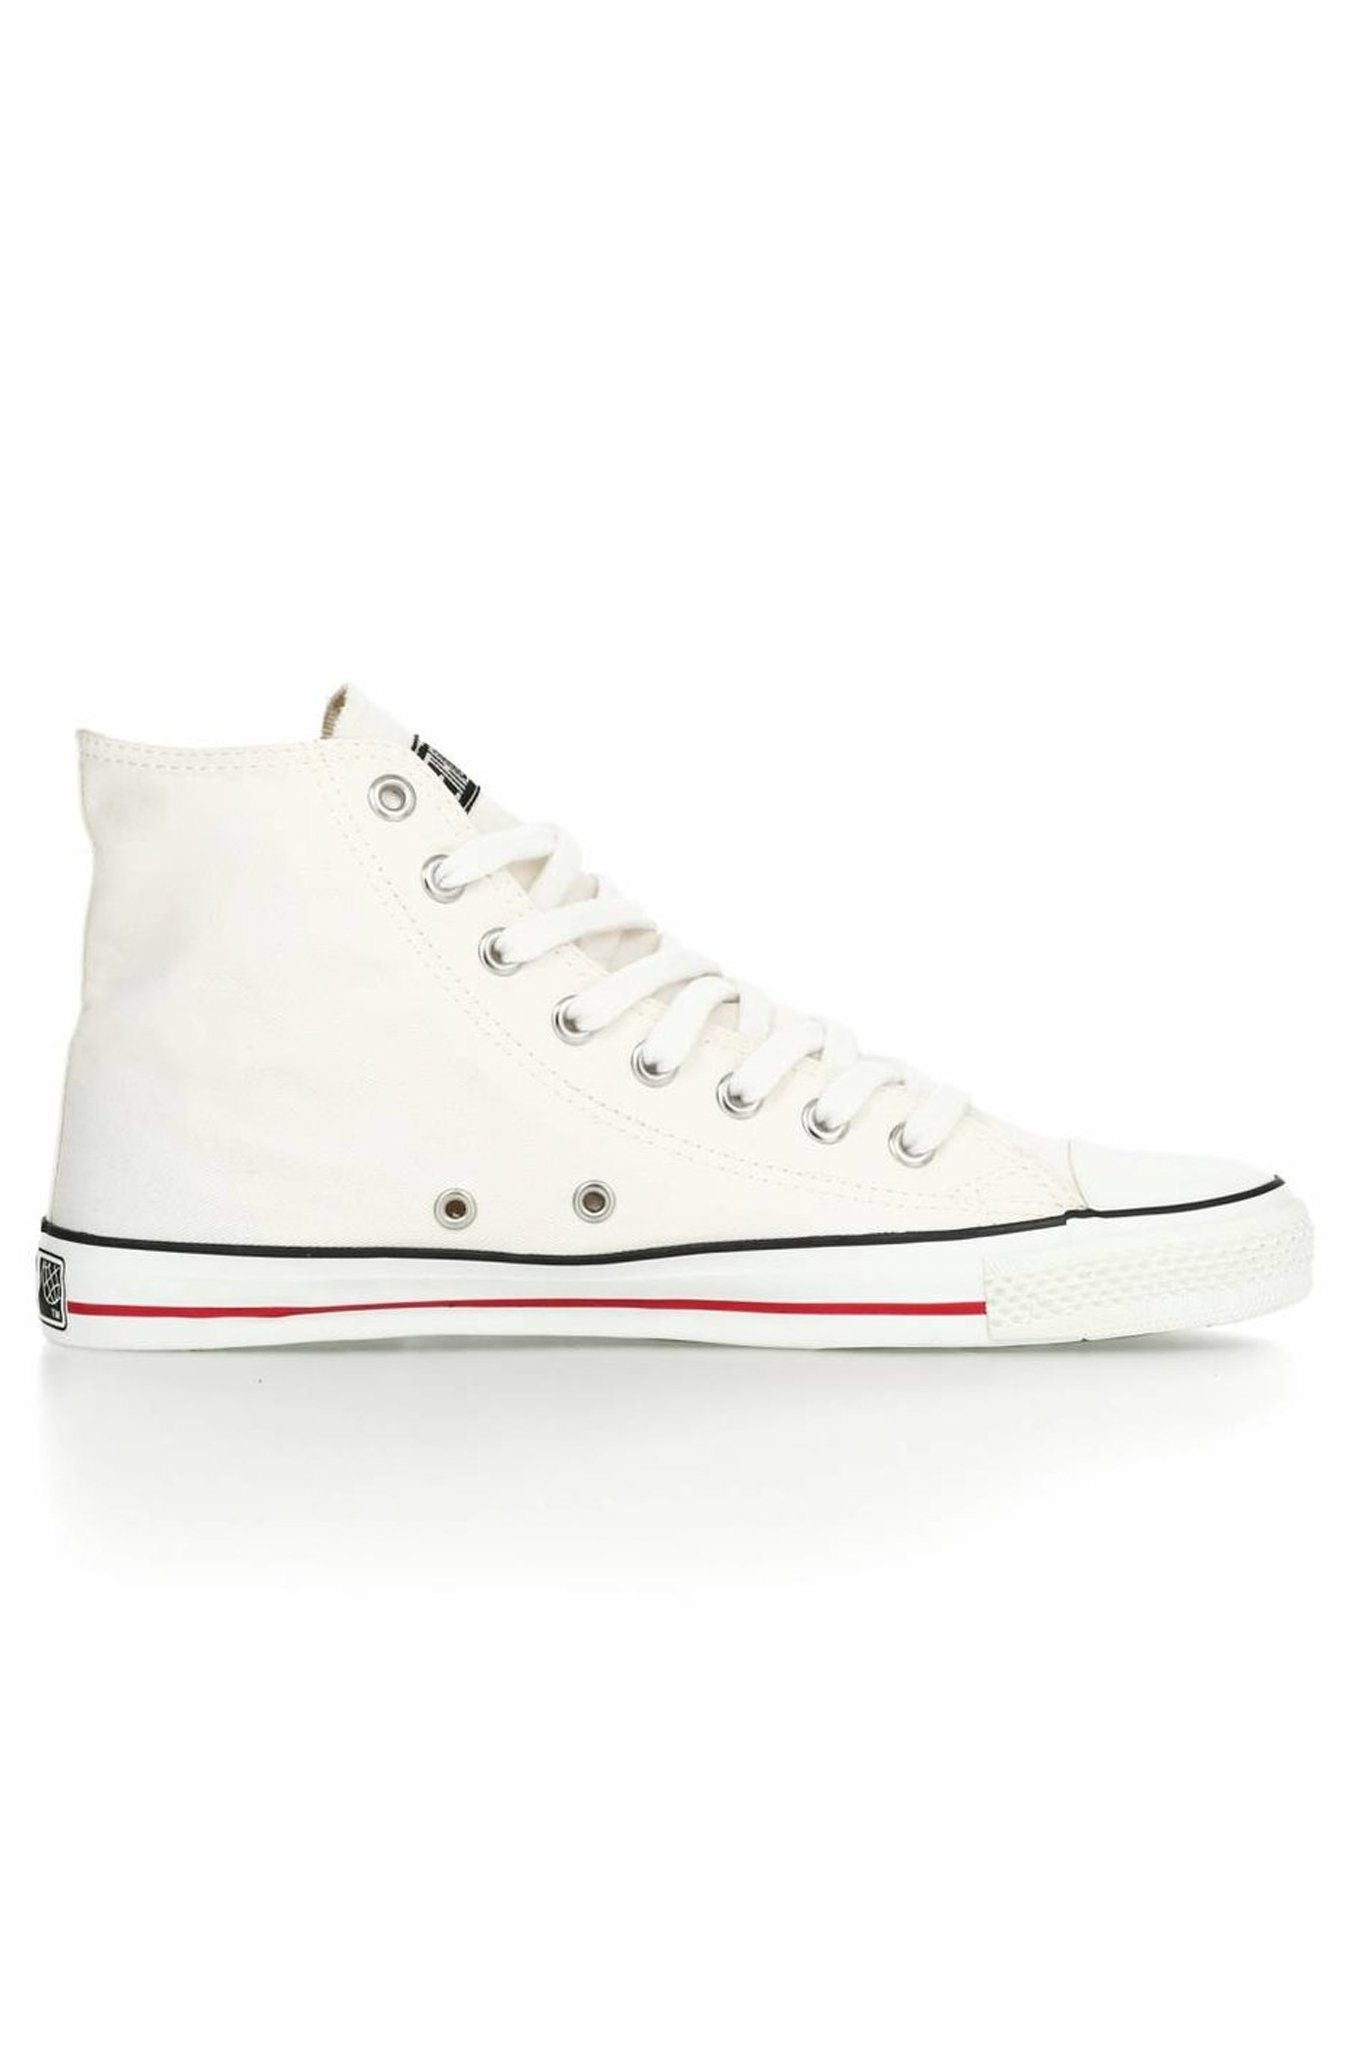 Shoes - HI TOP CLASSIC Sneaker White By Ethletic